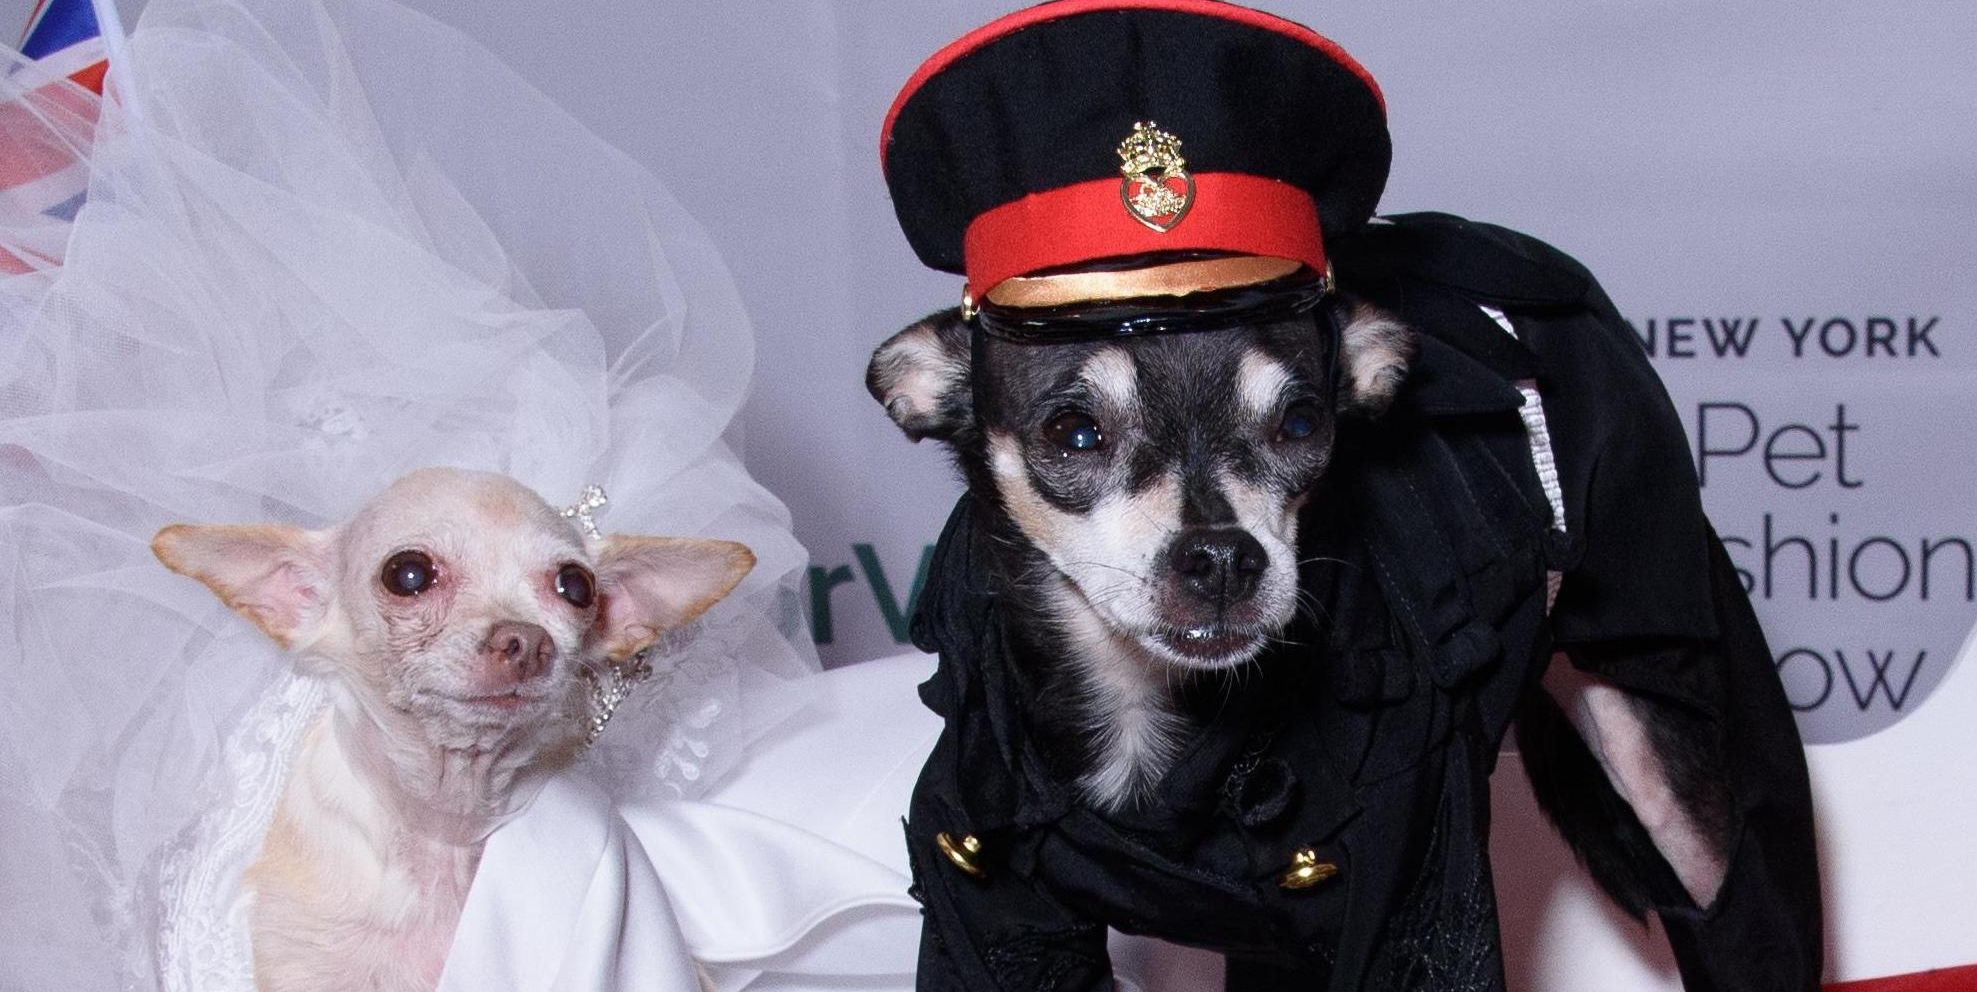 Forget Fashion Week, New York's 'Pet Fashion Show' Was Full Of Dogs In Amazing Costumes